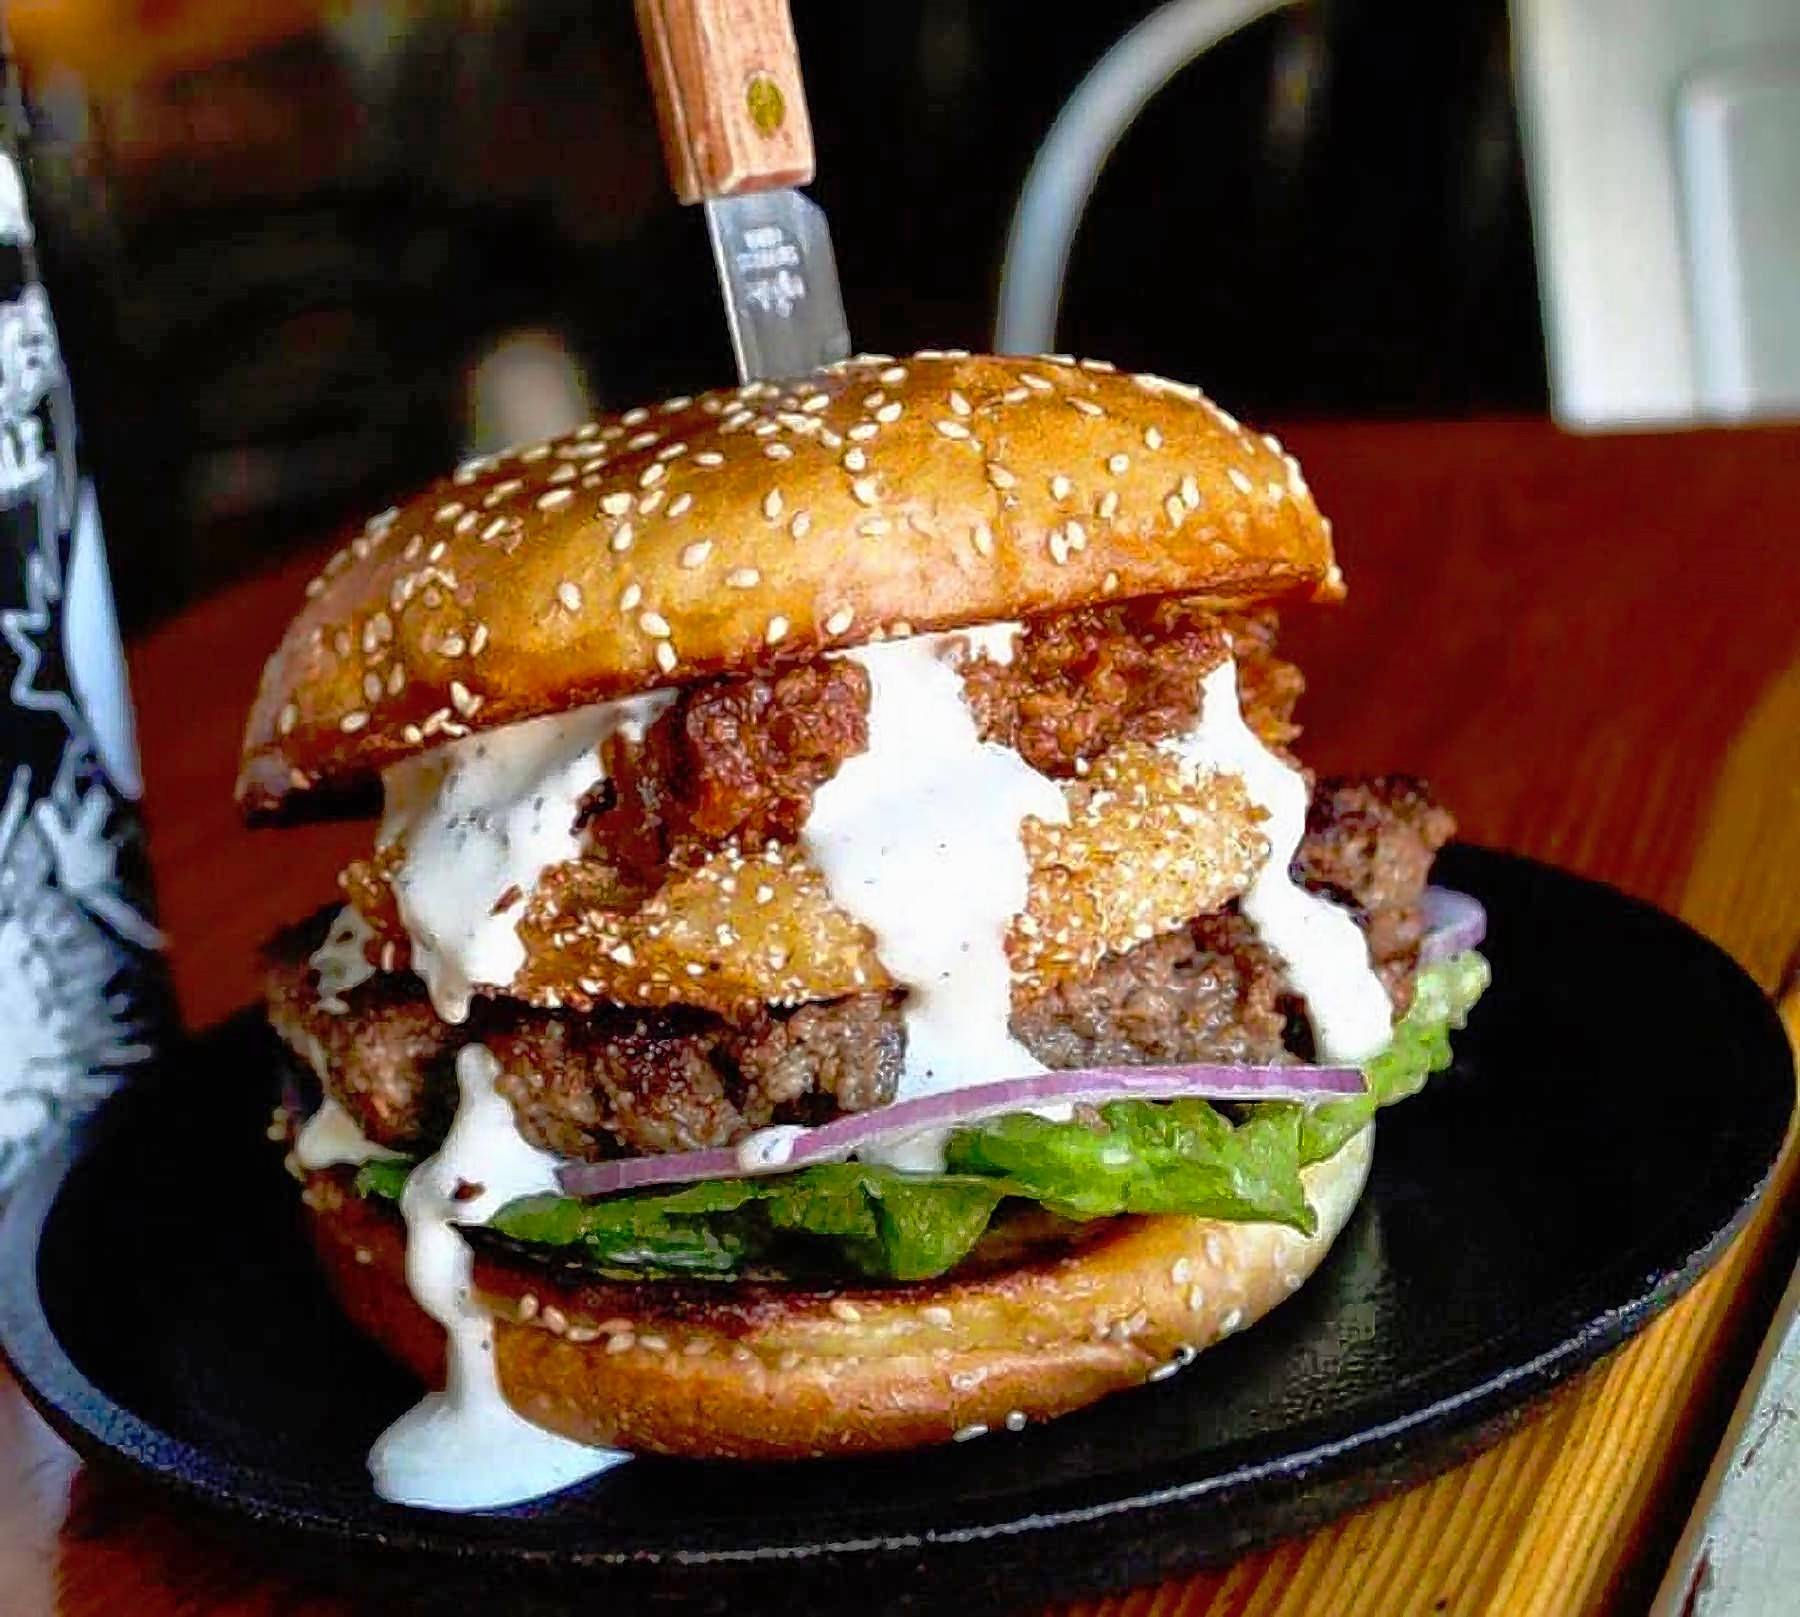 Oscar Lee's Barbecue serves up burgers such as the half-pound brisket patty topped with a fried green tomato, bacon jam and house ranch dressing on a sesame brioche bun.